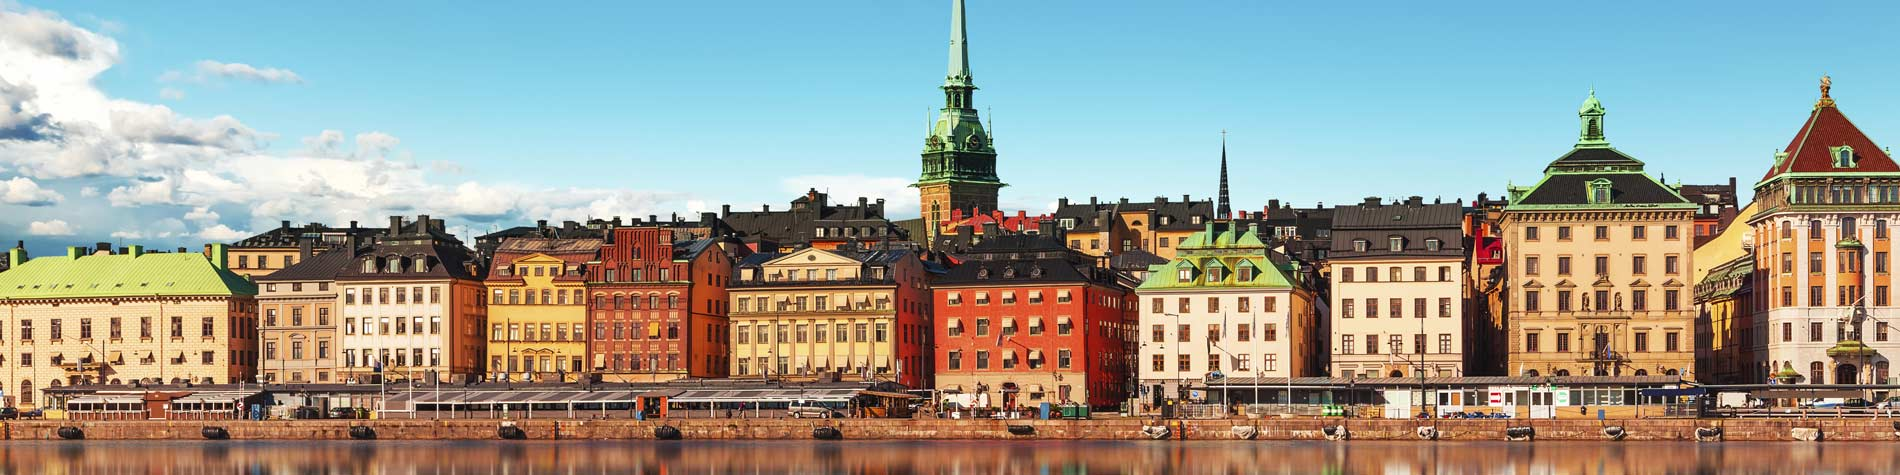 Cheap Flights To Sweden From 163 9 78 Ryanair Com